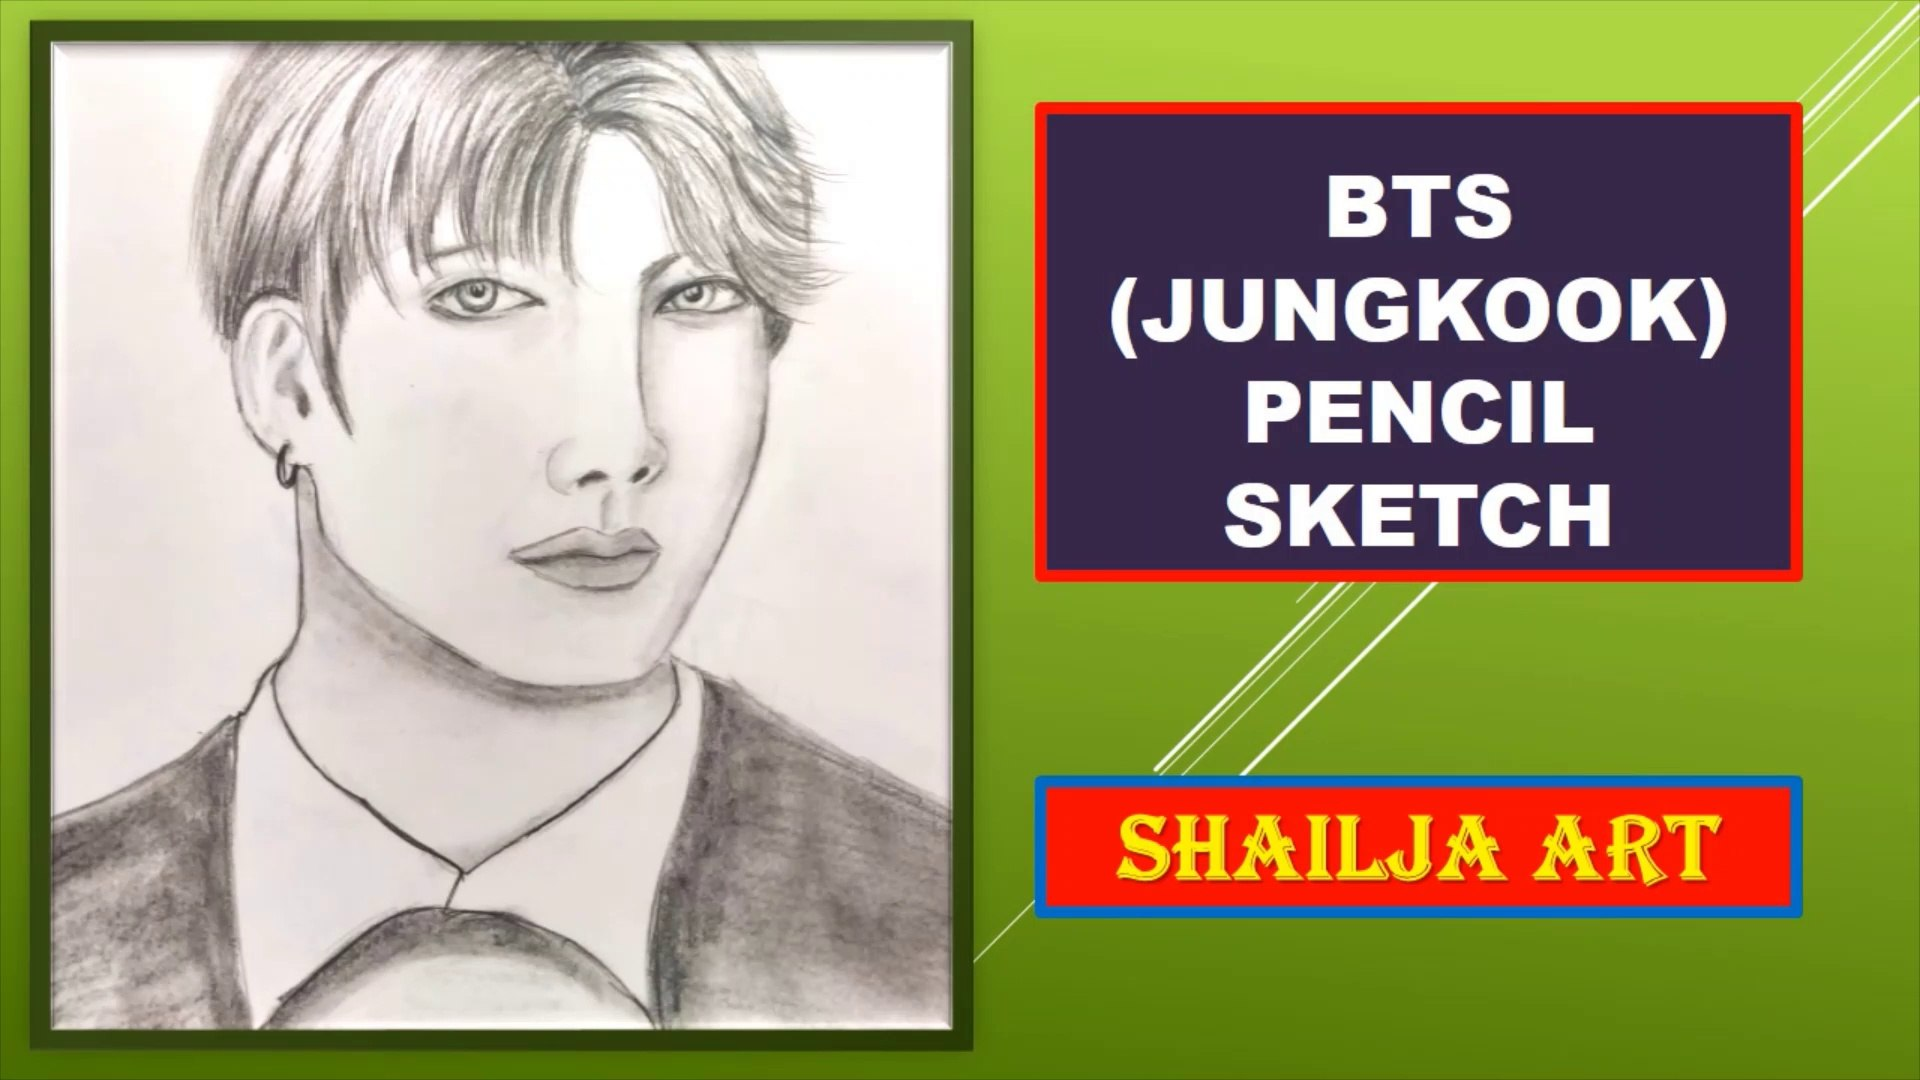 How To Draw Bts Jungkook Bts Pencil Sketch Shailja Art Video Dailymotion